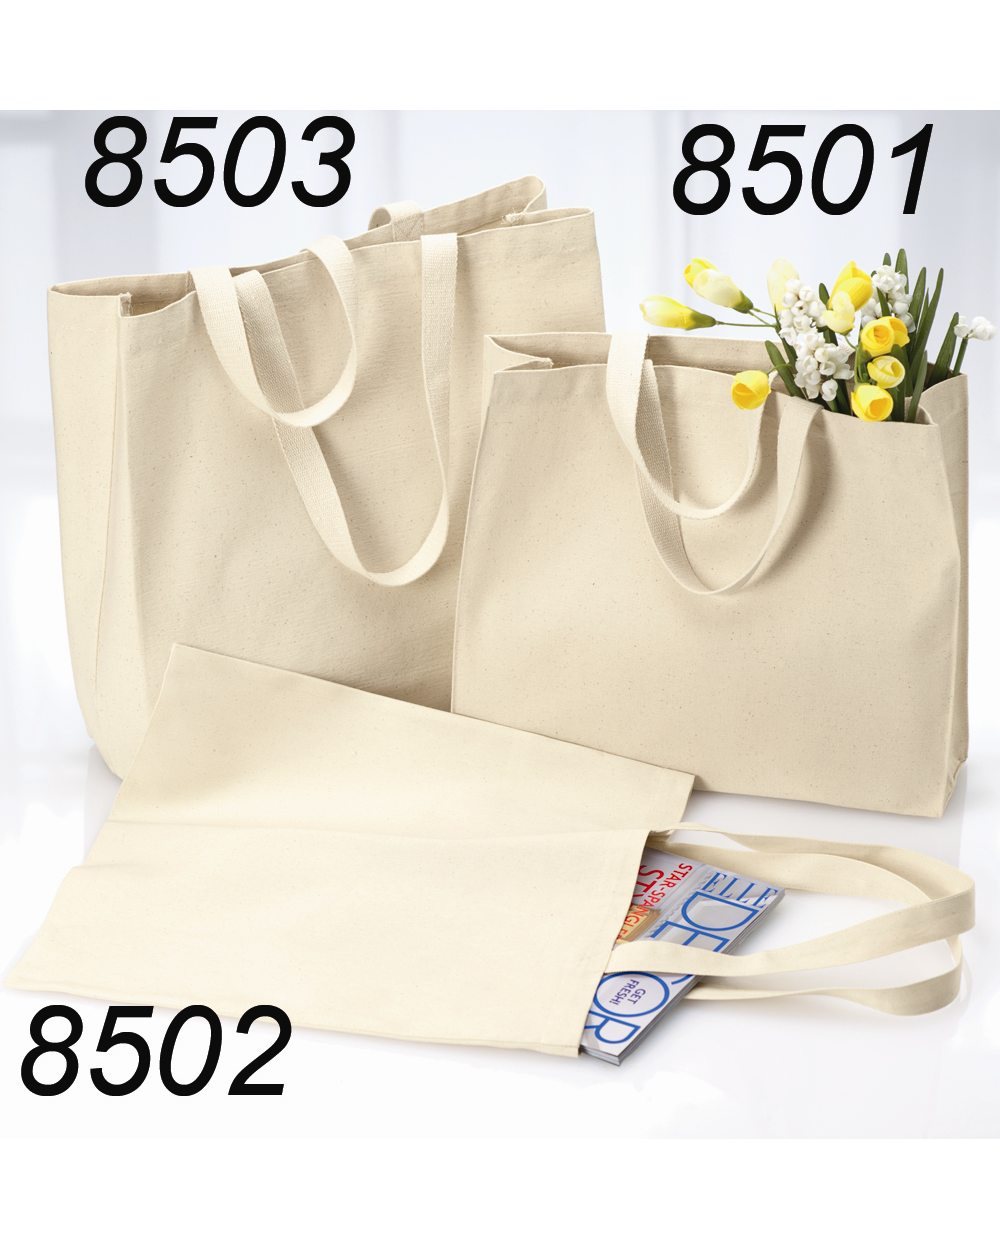 06345049fcf Opentip.com: Liberty Bags 8503 12 Ounce Cotton Canvas Tote, Price/each